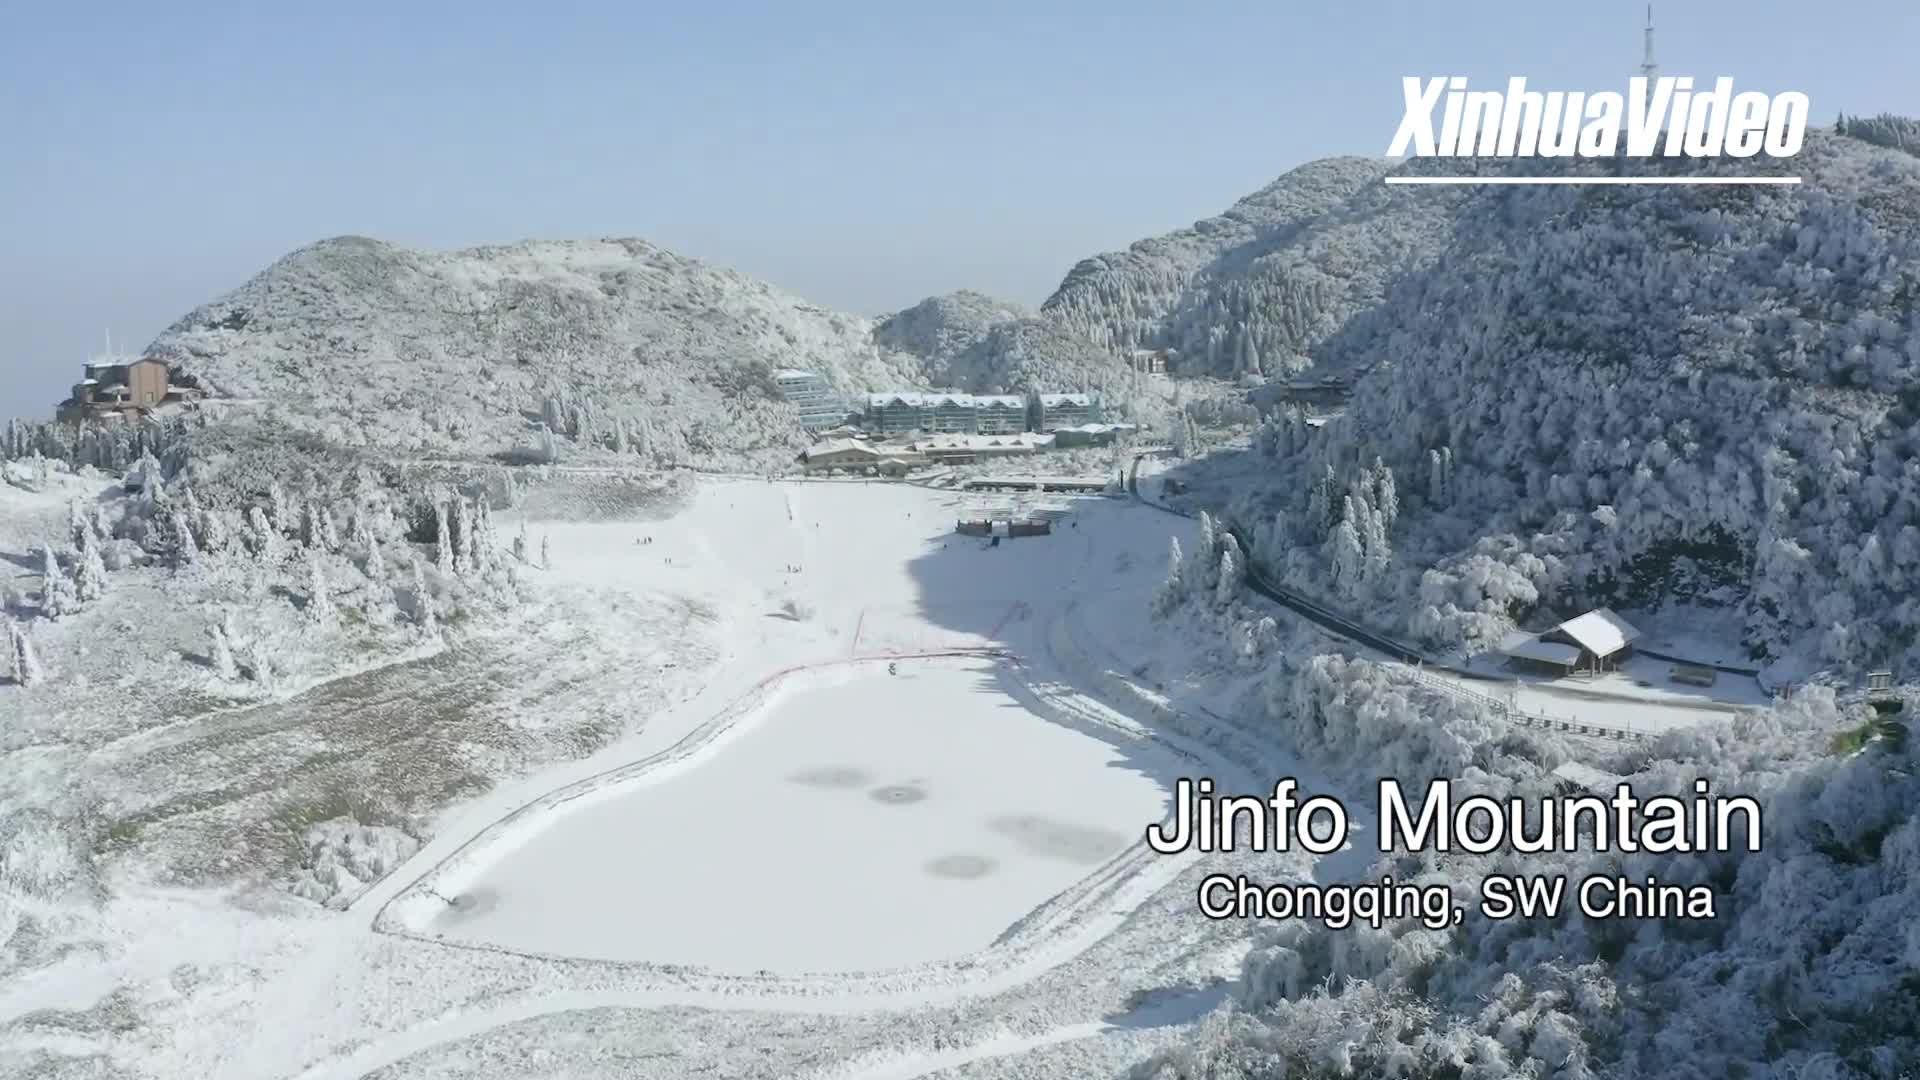 Jinfo Mountain is snowy, winter wonderland for tourists